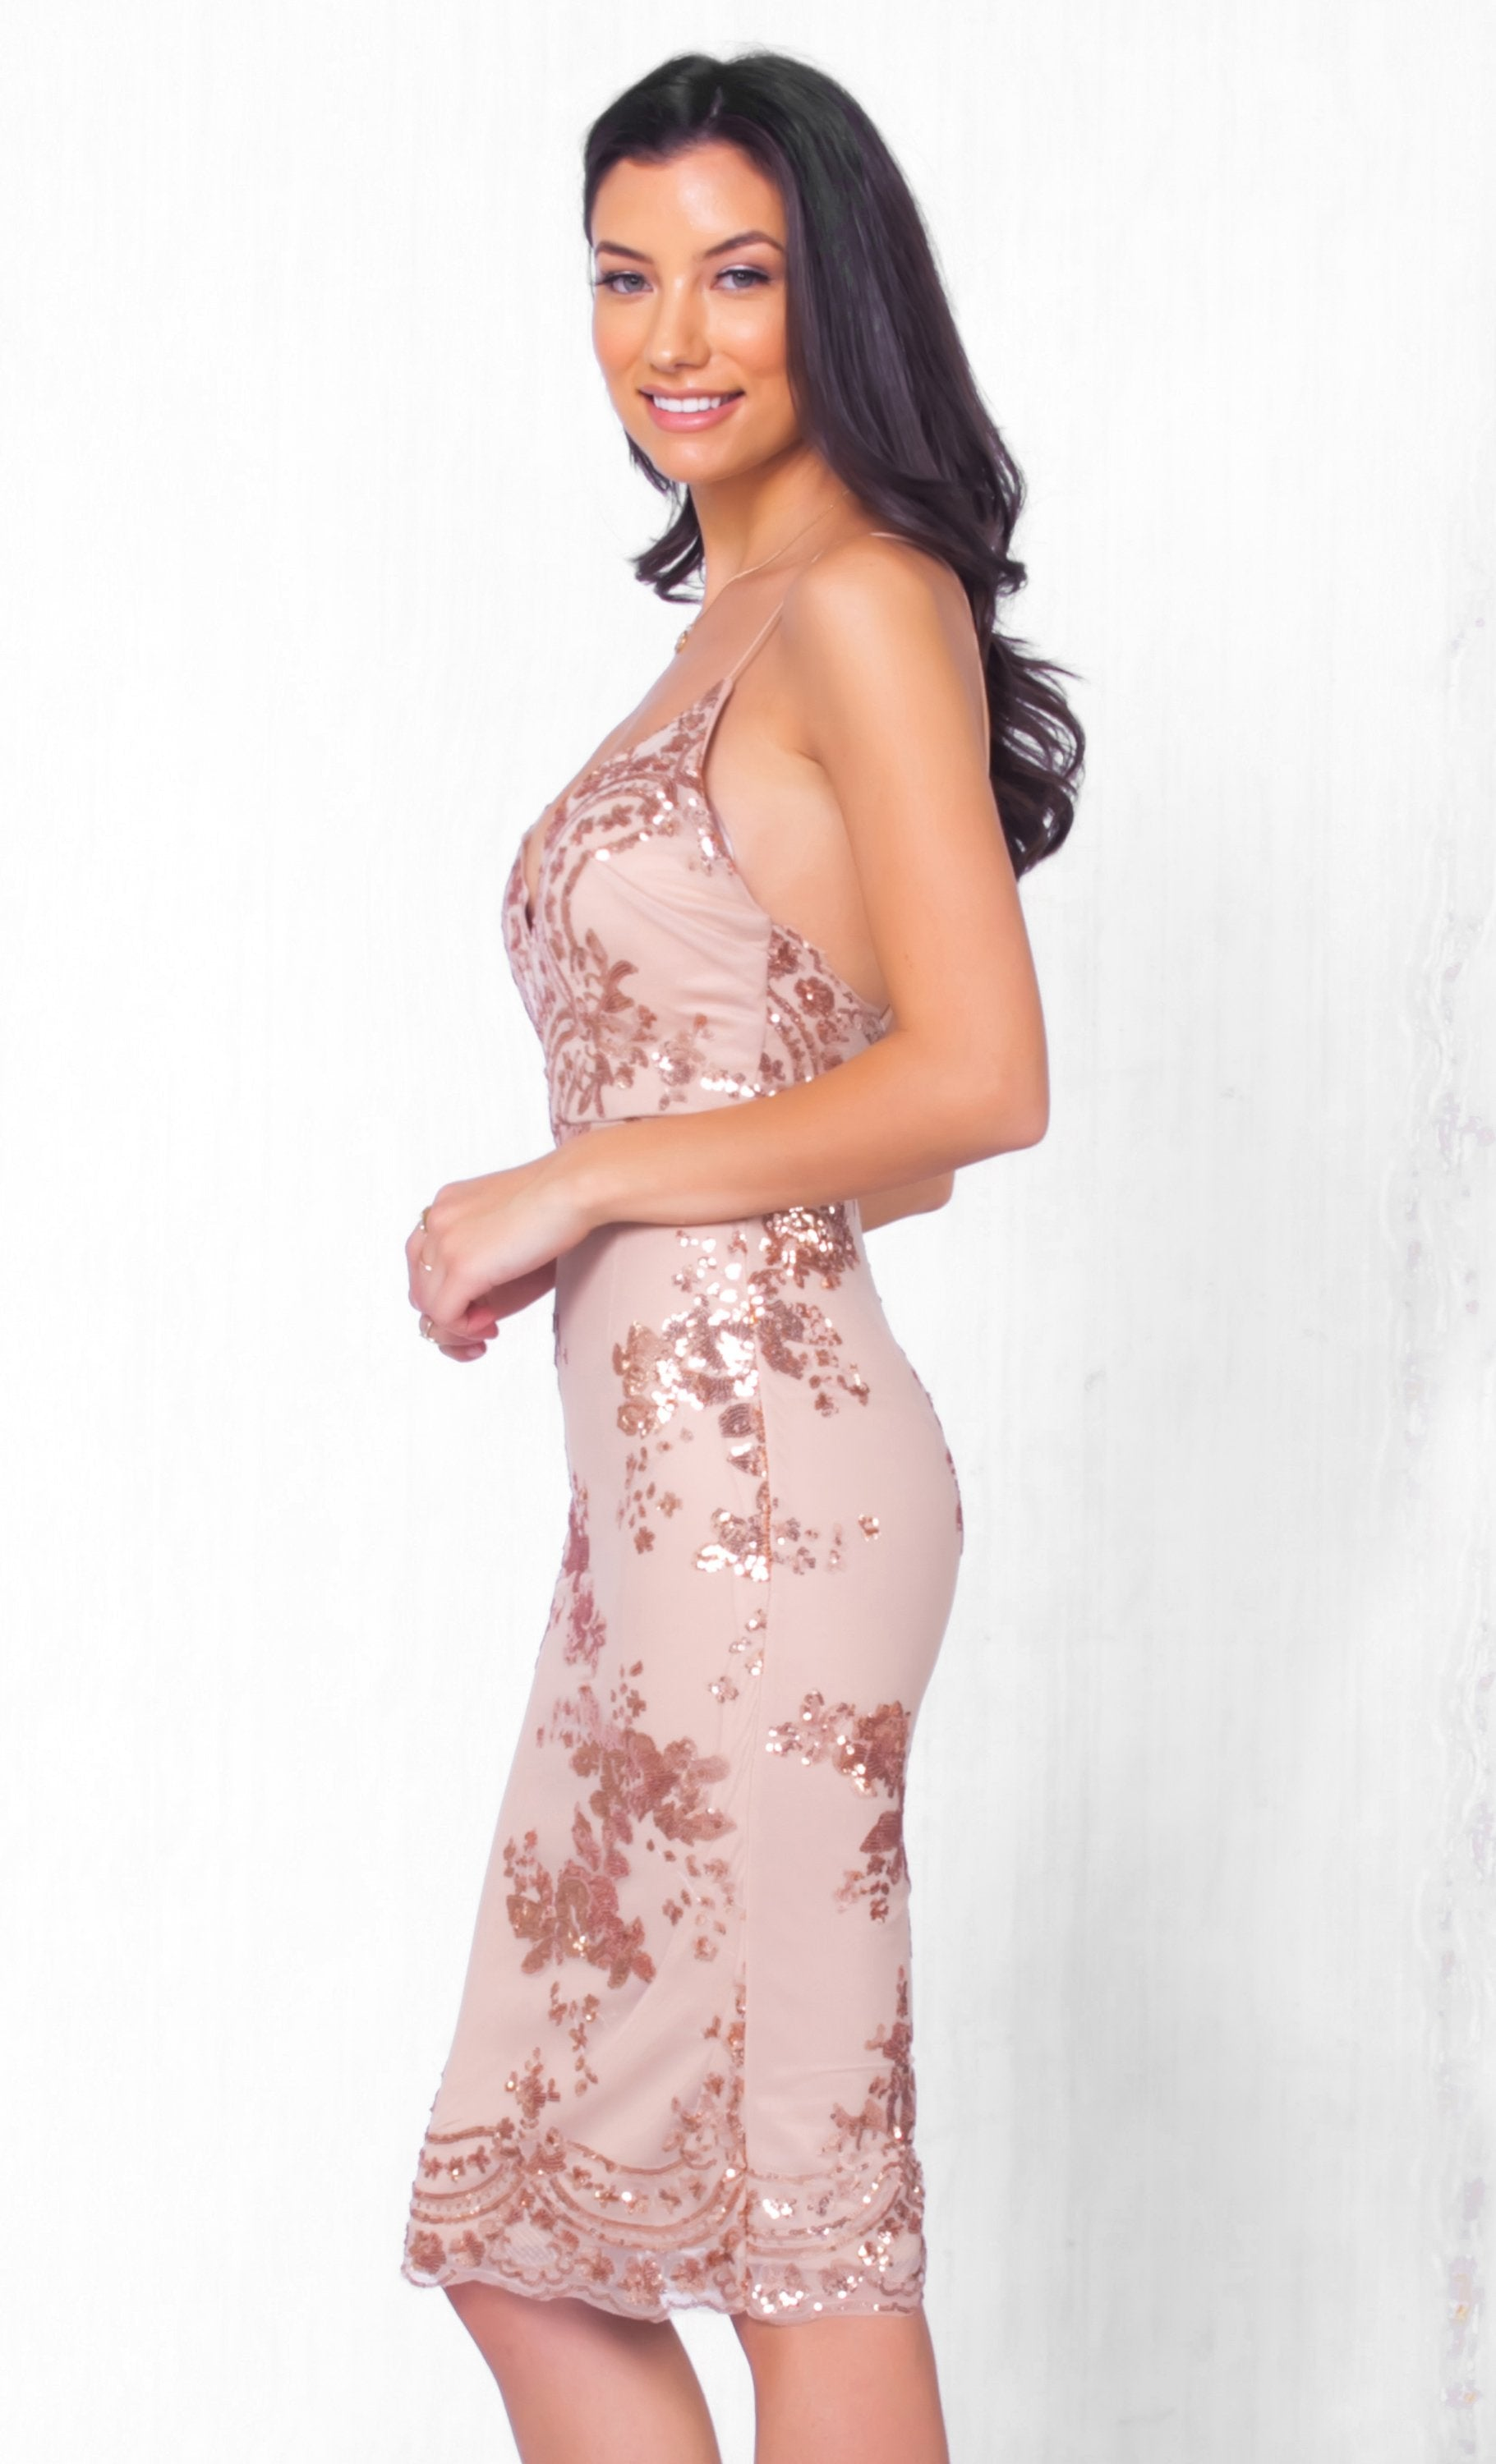 Indie XO A Moment's Notice Beige Gold Lace Sequin Sleeveless Spaghetti Strap V Neck Bodycon Mini Dress - Just Ours!